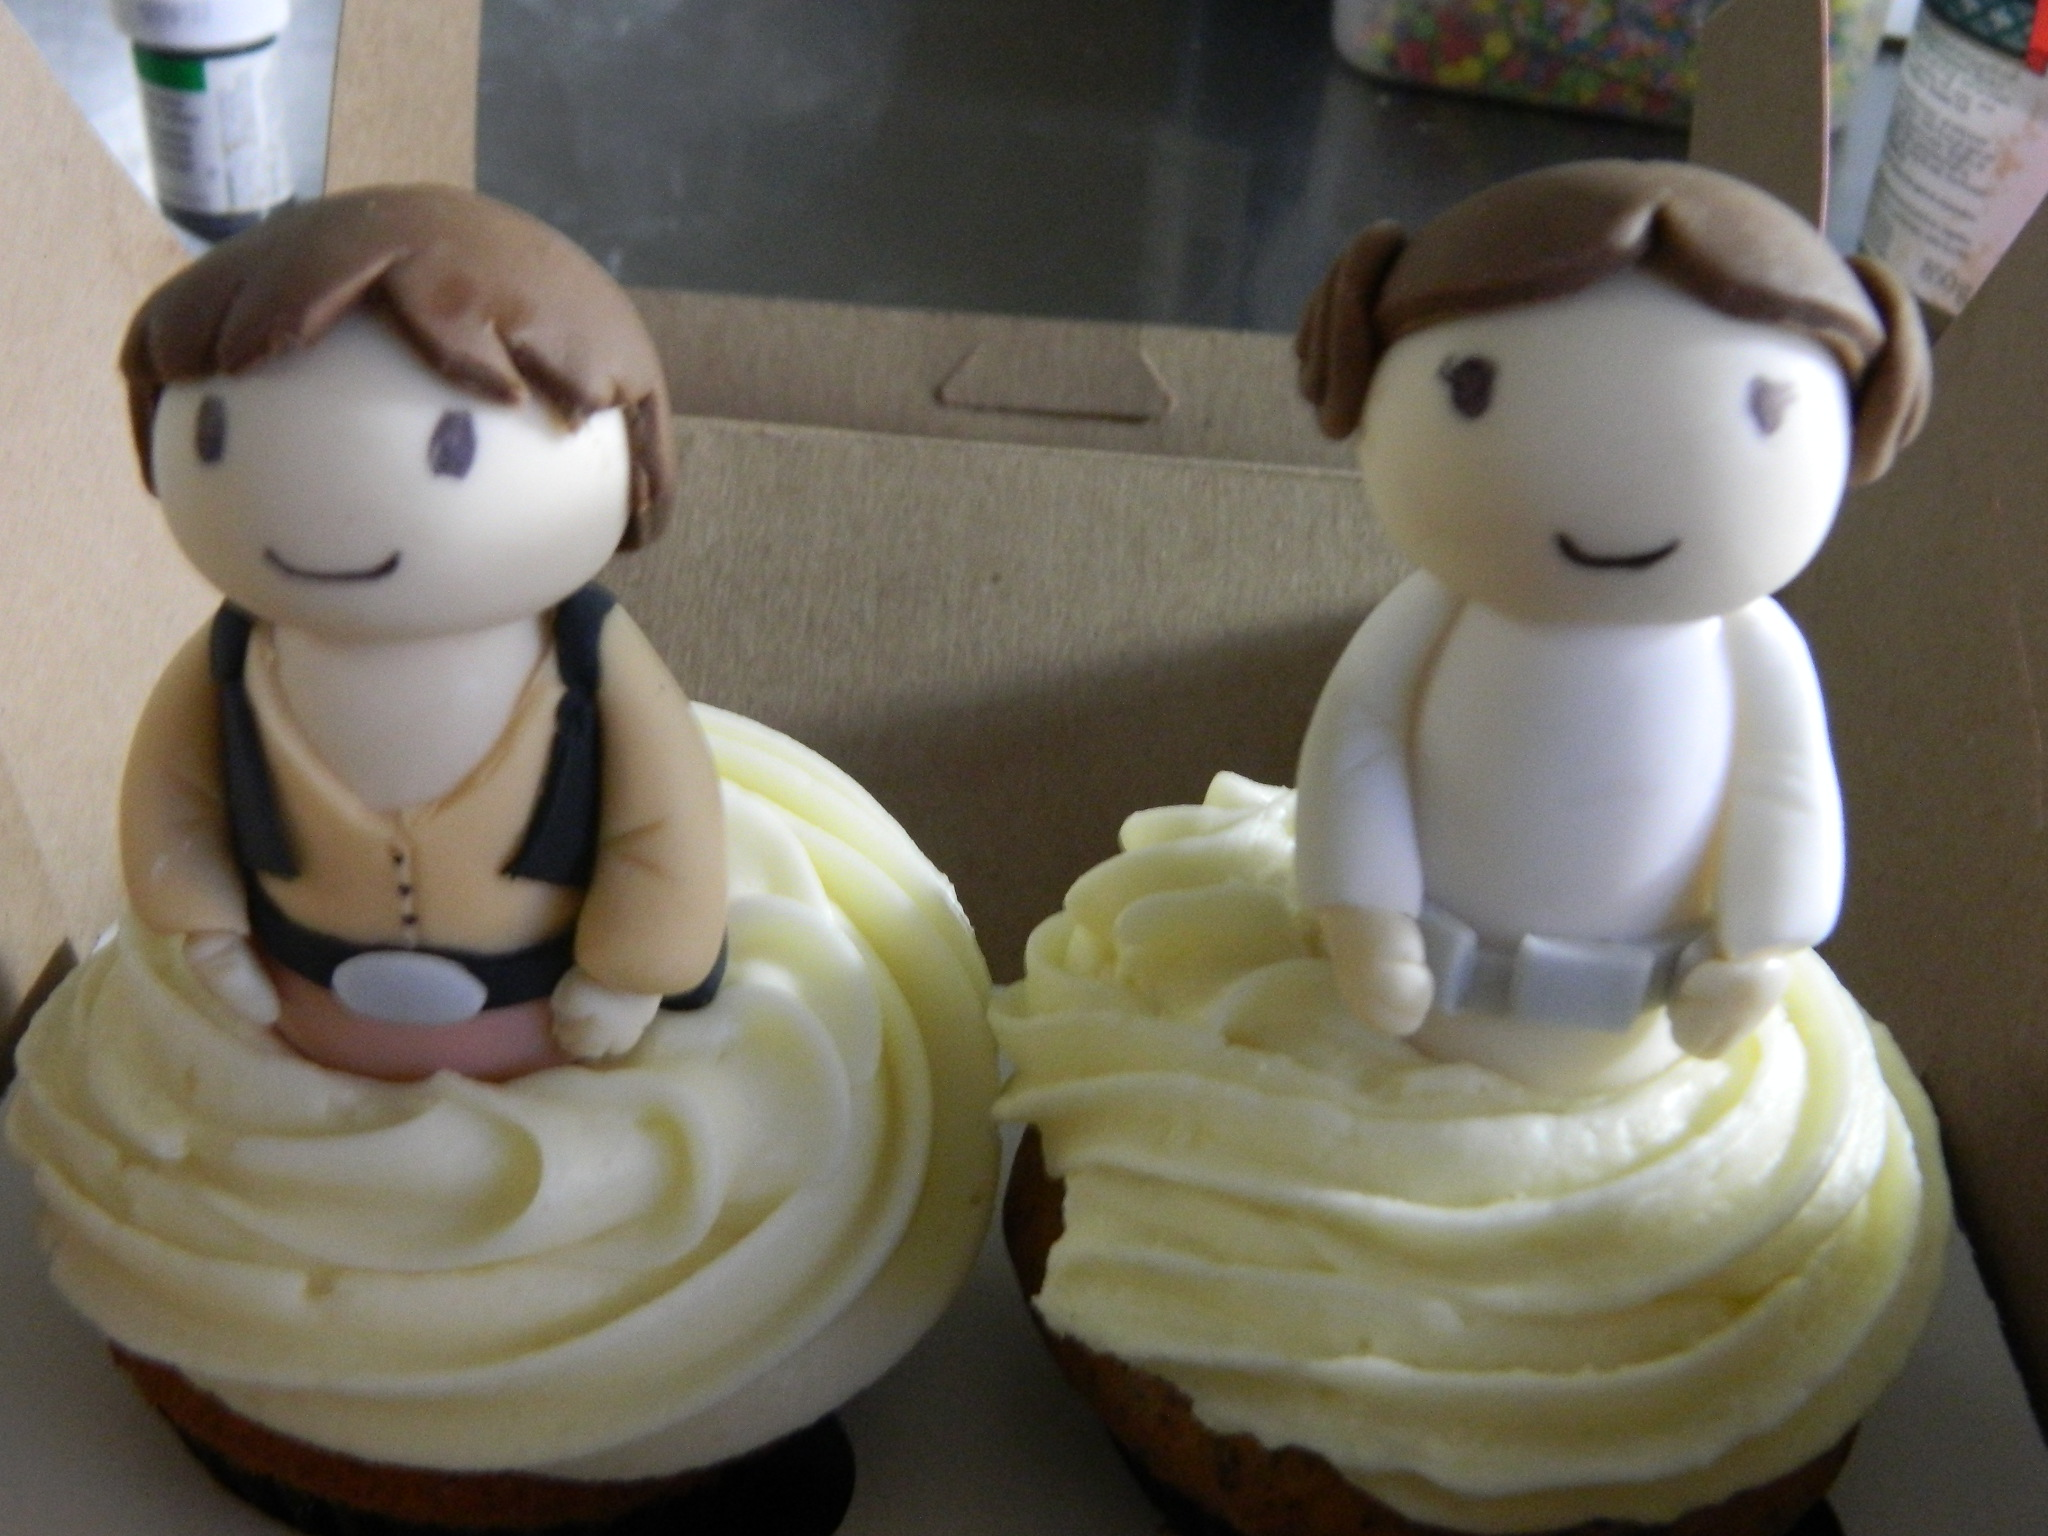 Star Wars themed wedding (topper) cupcakes